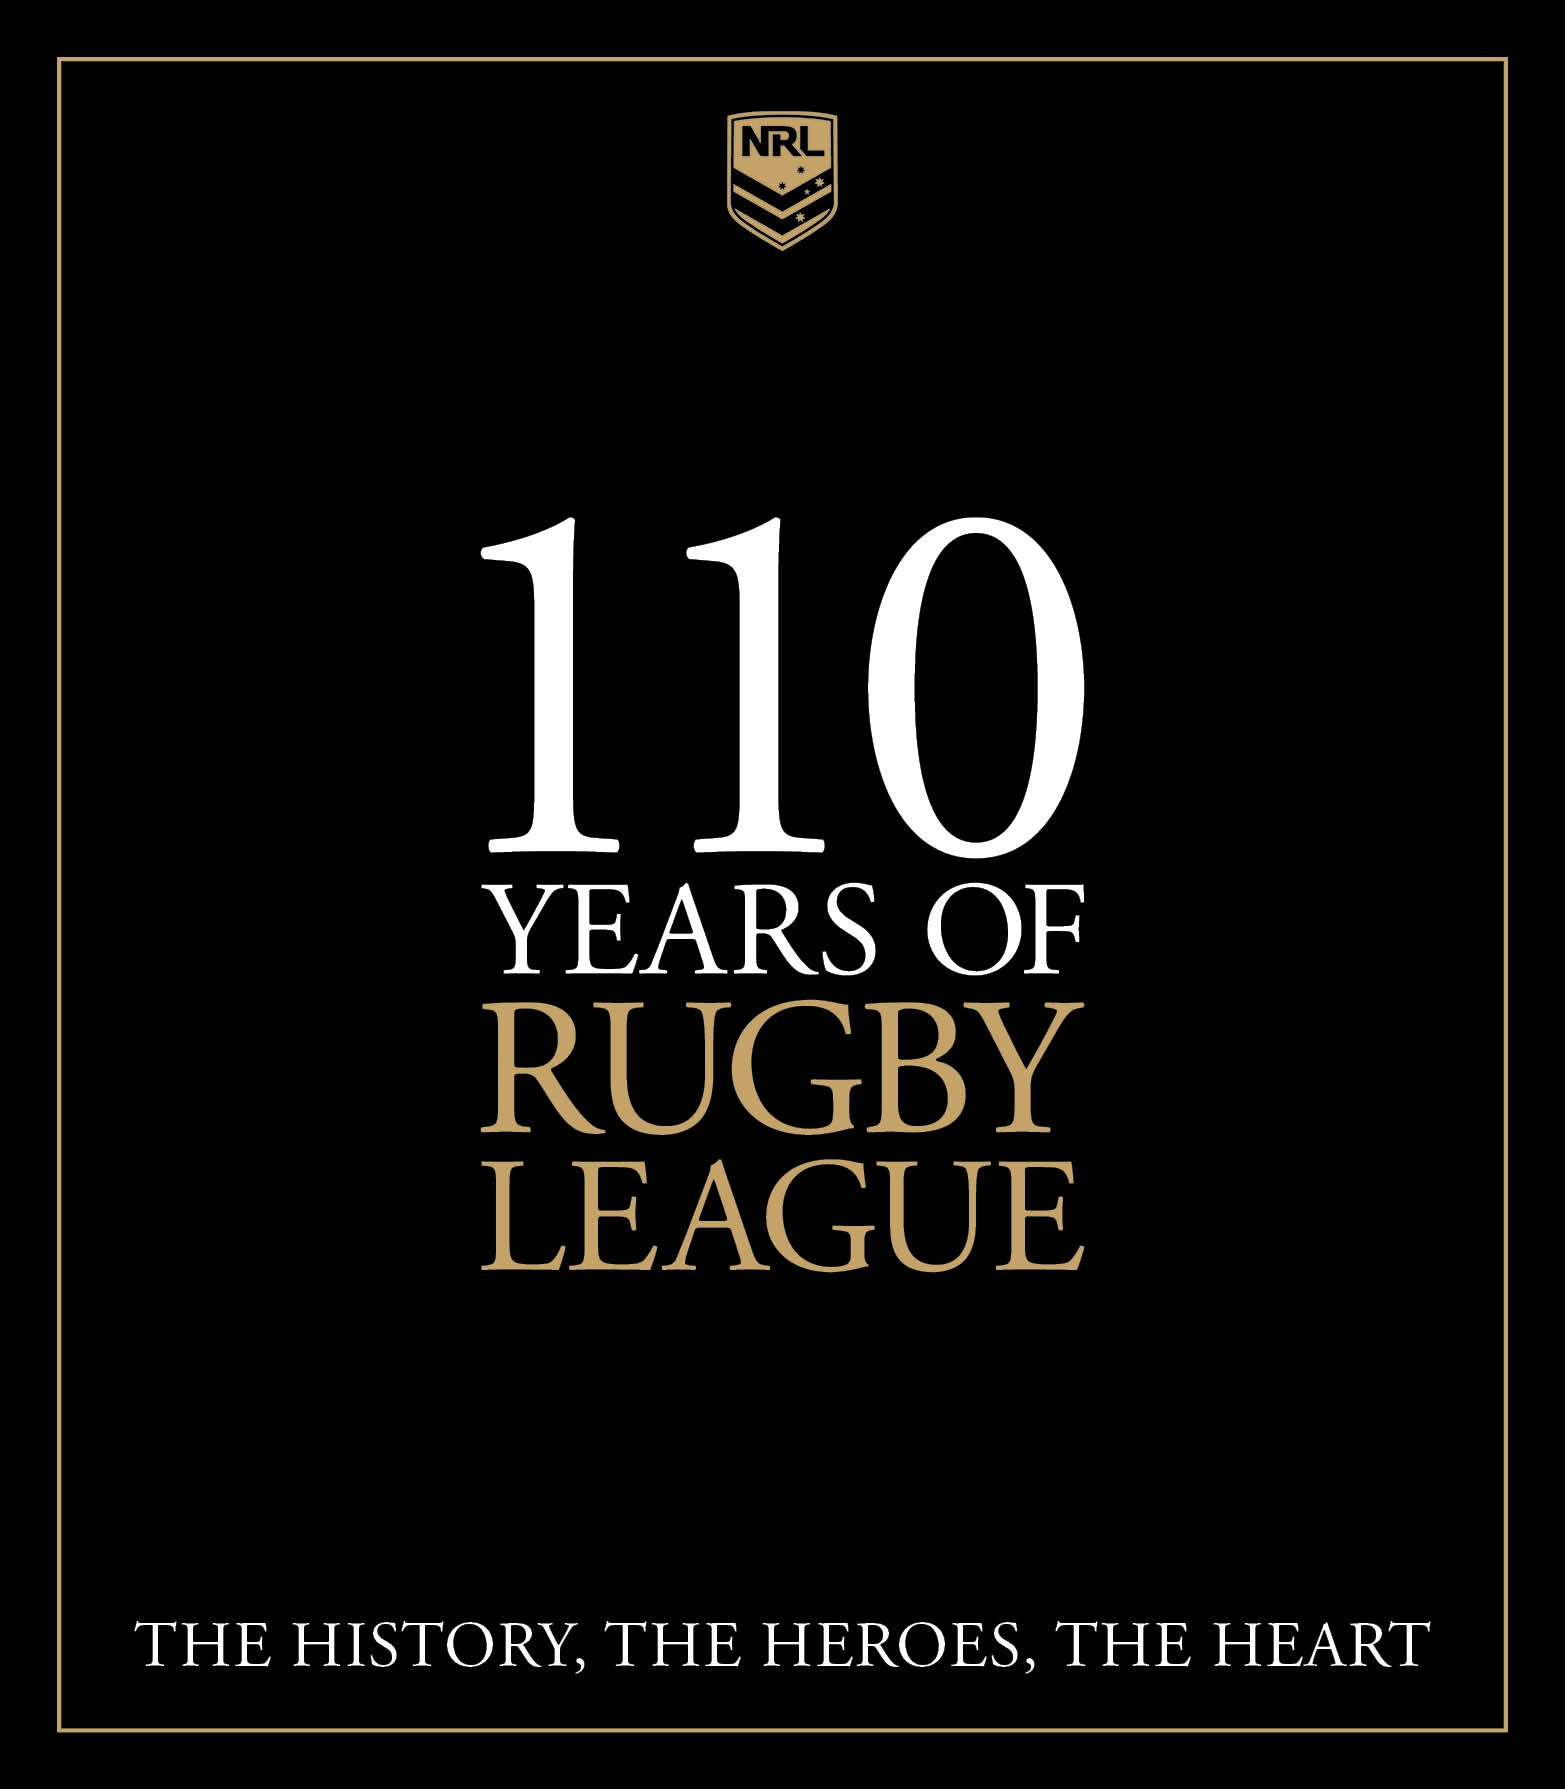 110 Years of Rugby League